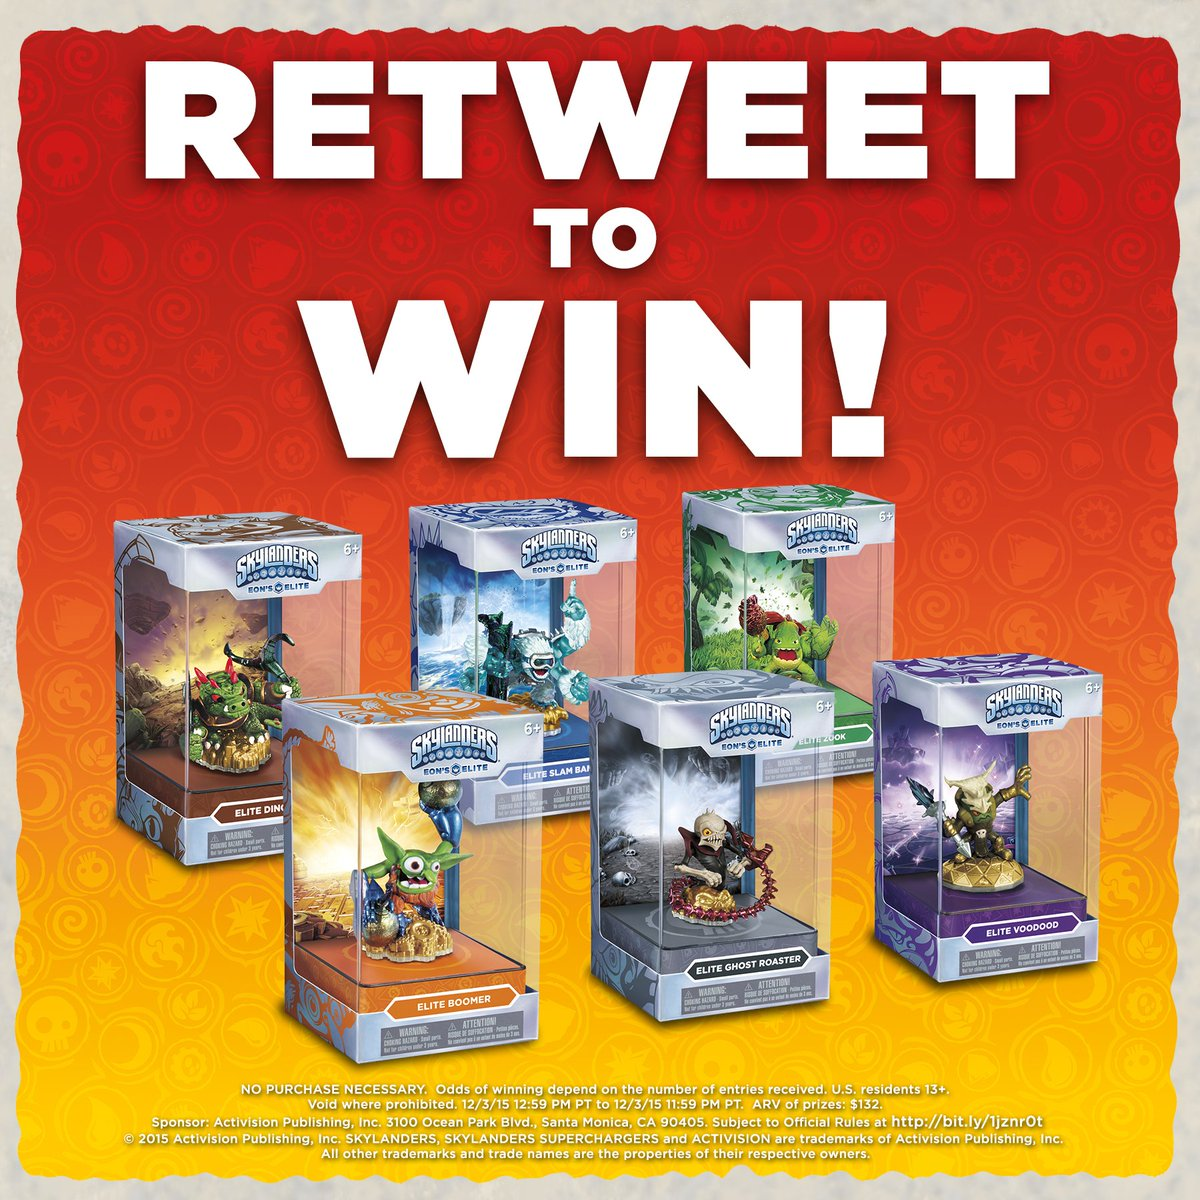 Time to prepare for Kaos! RT for a chance to win a pack of #Skylanders Eon's Elite! Rules: https://t.co/TYAmEcB9w7 https://t.co/pJYD9ie2wM